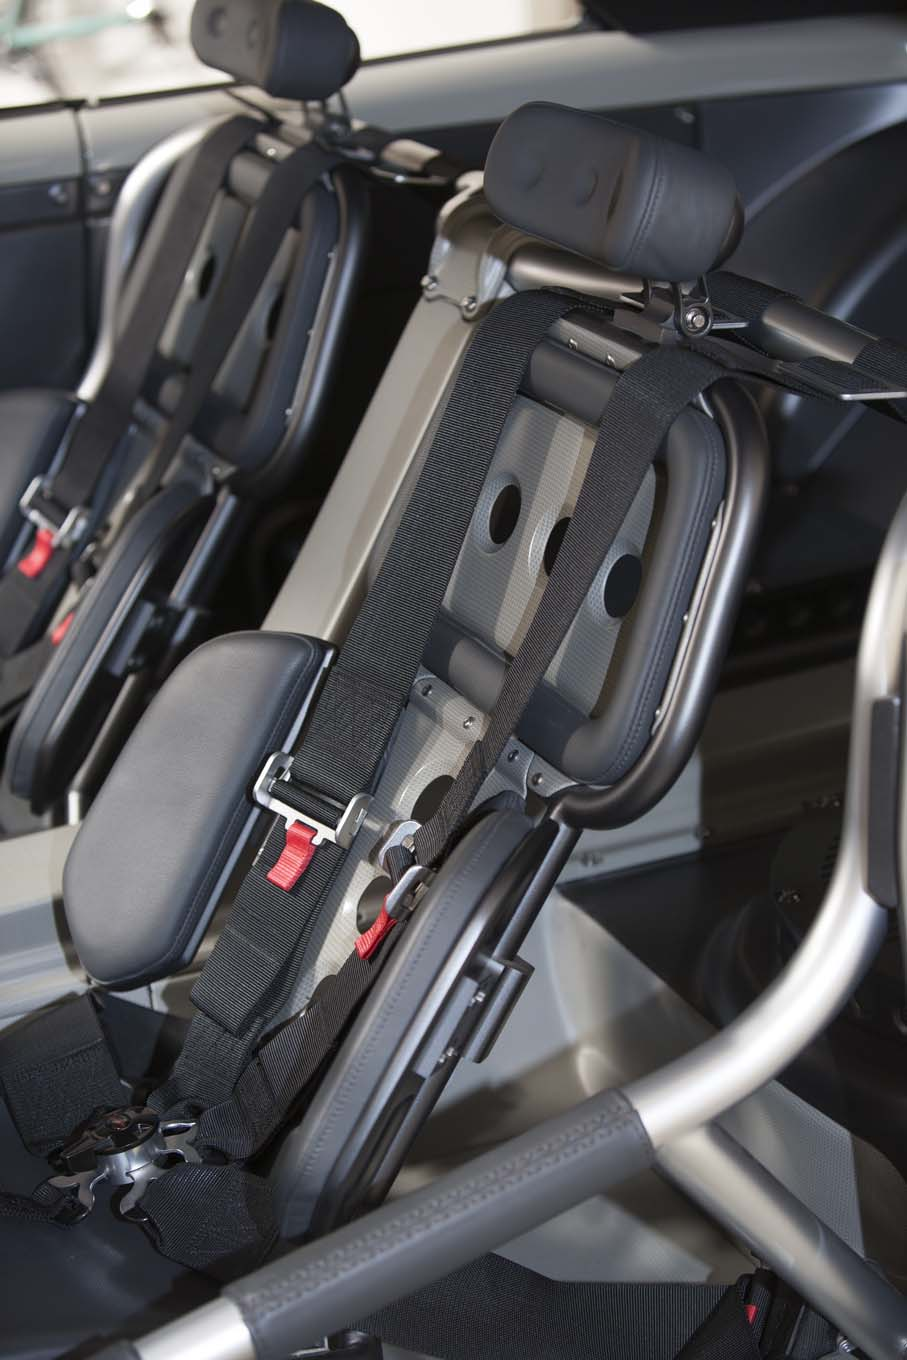 One-off seats with discontinuous pads are actually not uncomfortable for short driving sessions.